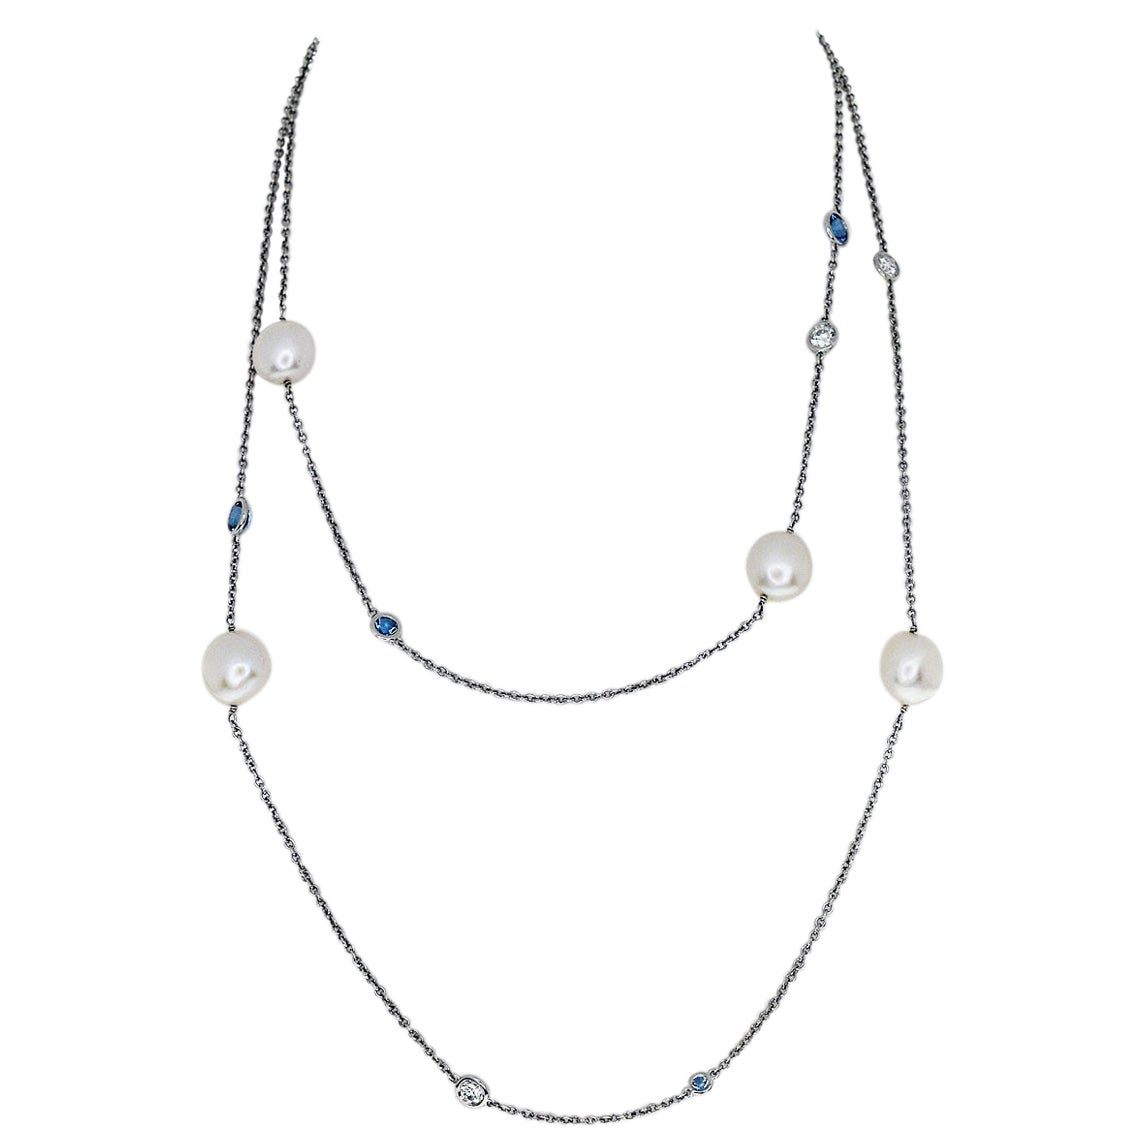 Tiffany & Co. Diamond Pearl Aquamarine Platinum by the Yard Long Necklace